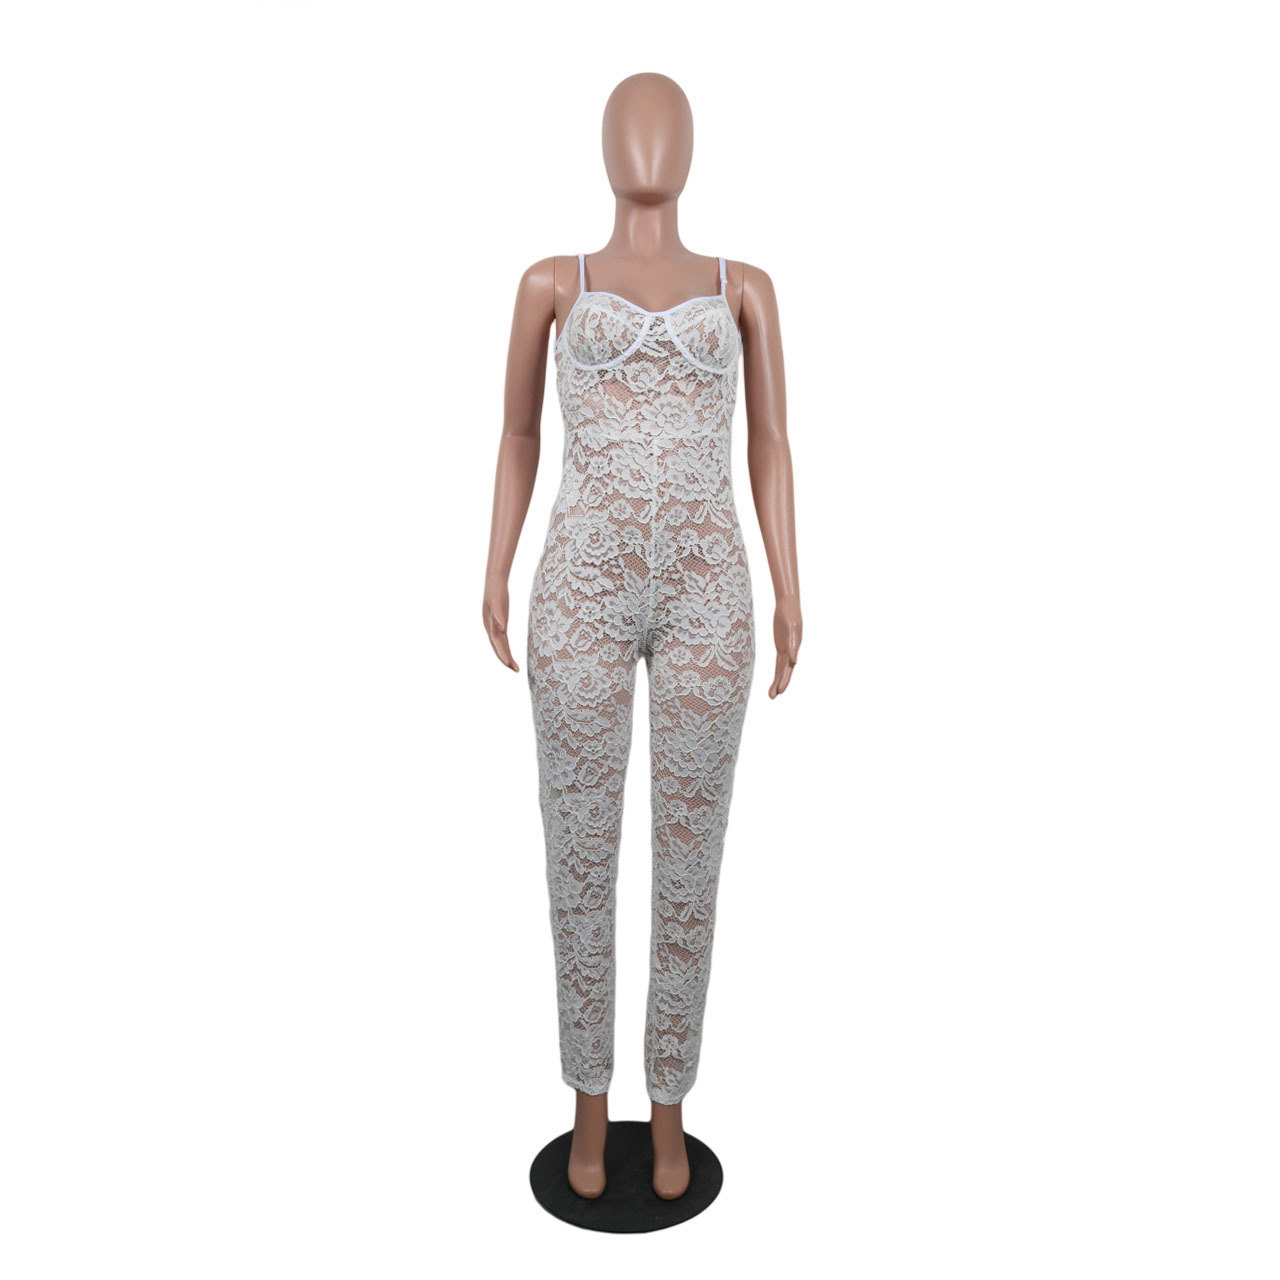 37f77dee4a6 2019 Summer White Lace Jumpsuit Women Strap See Through Bodysuit ...